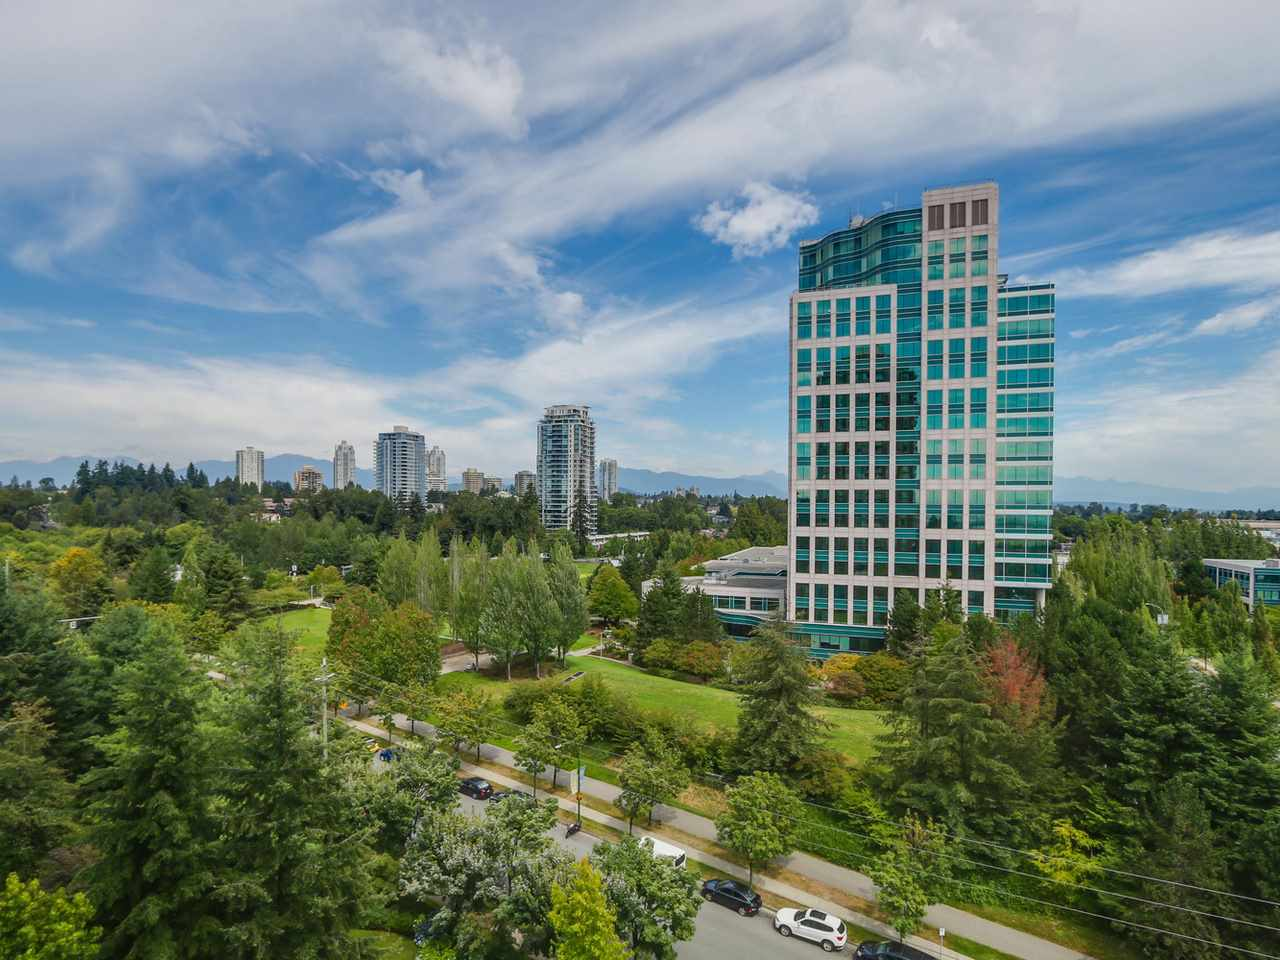 Photo 10: 1005 6888 STATION HILL Drive in Burnaby: South Slope Condo for sale (Burnaby South)  : MLS® # R2125491